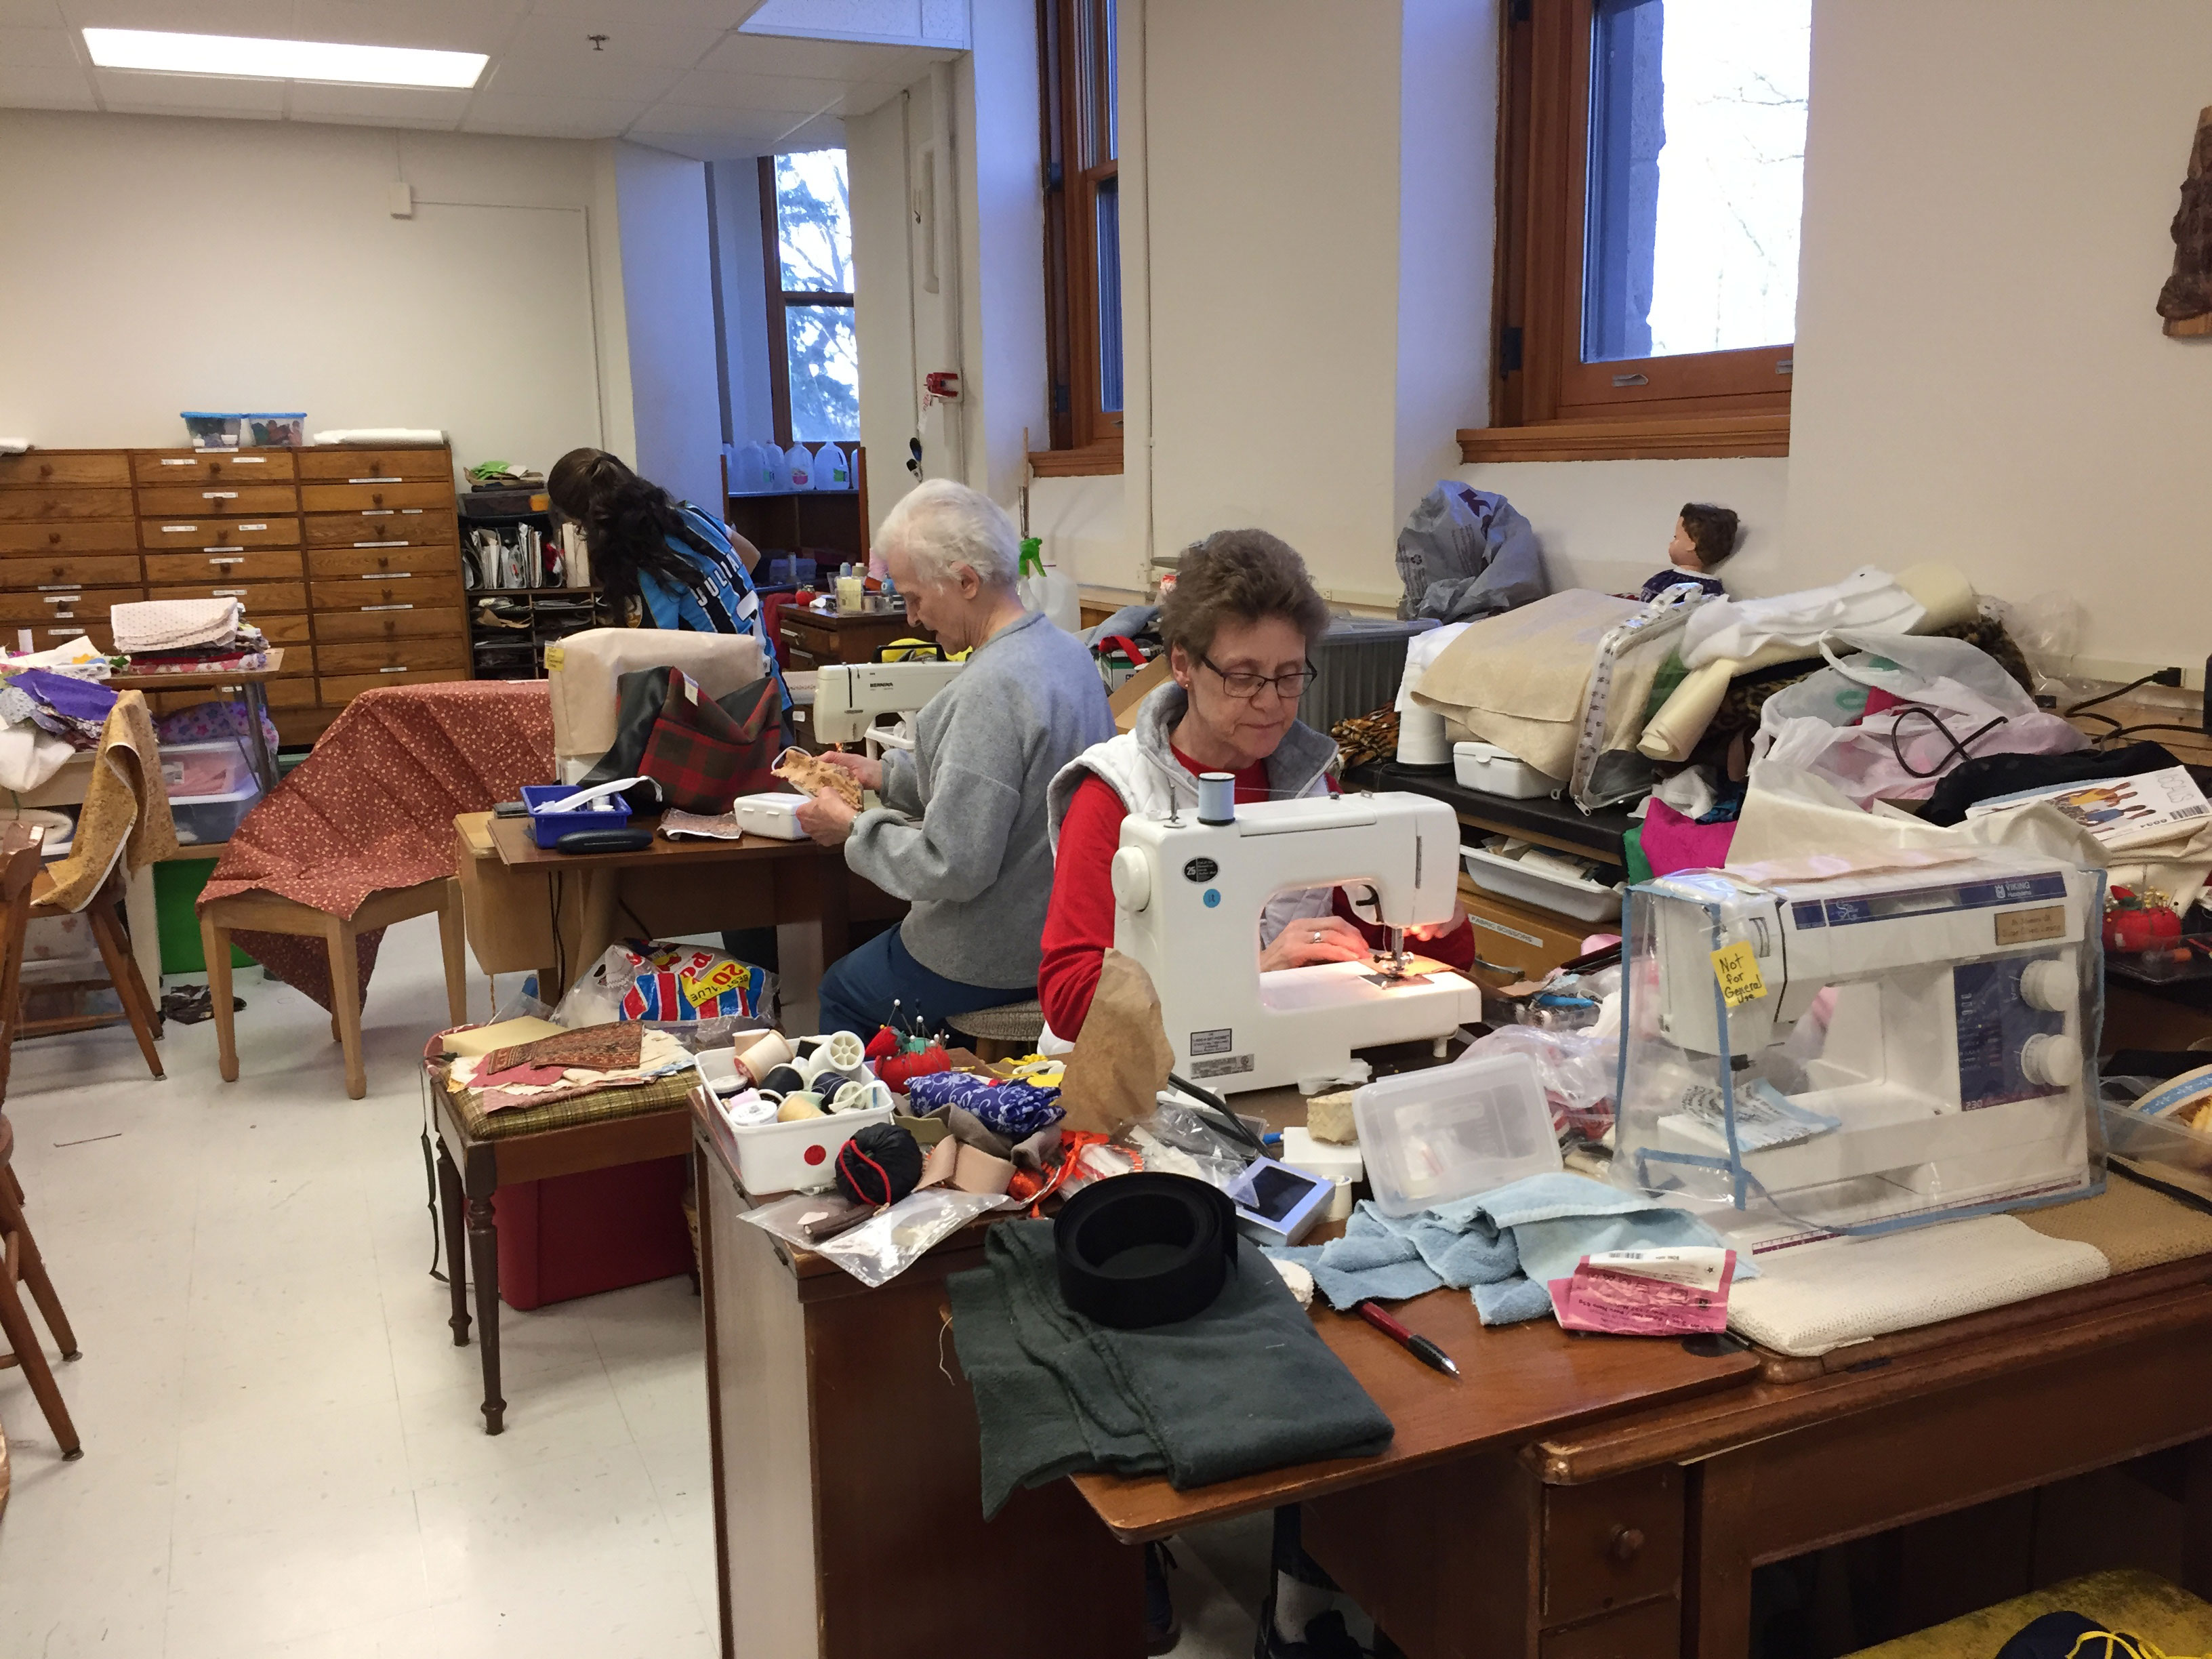 Sisters sew and iron fabric to make mask at Our Lady of Good Counsel in Mankato, Minnesota.